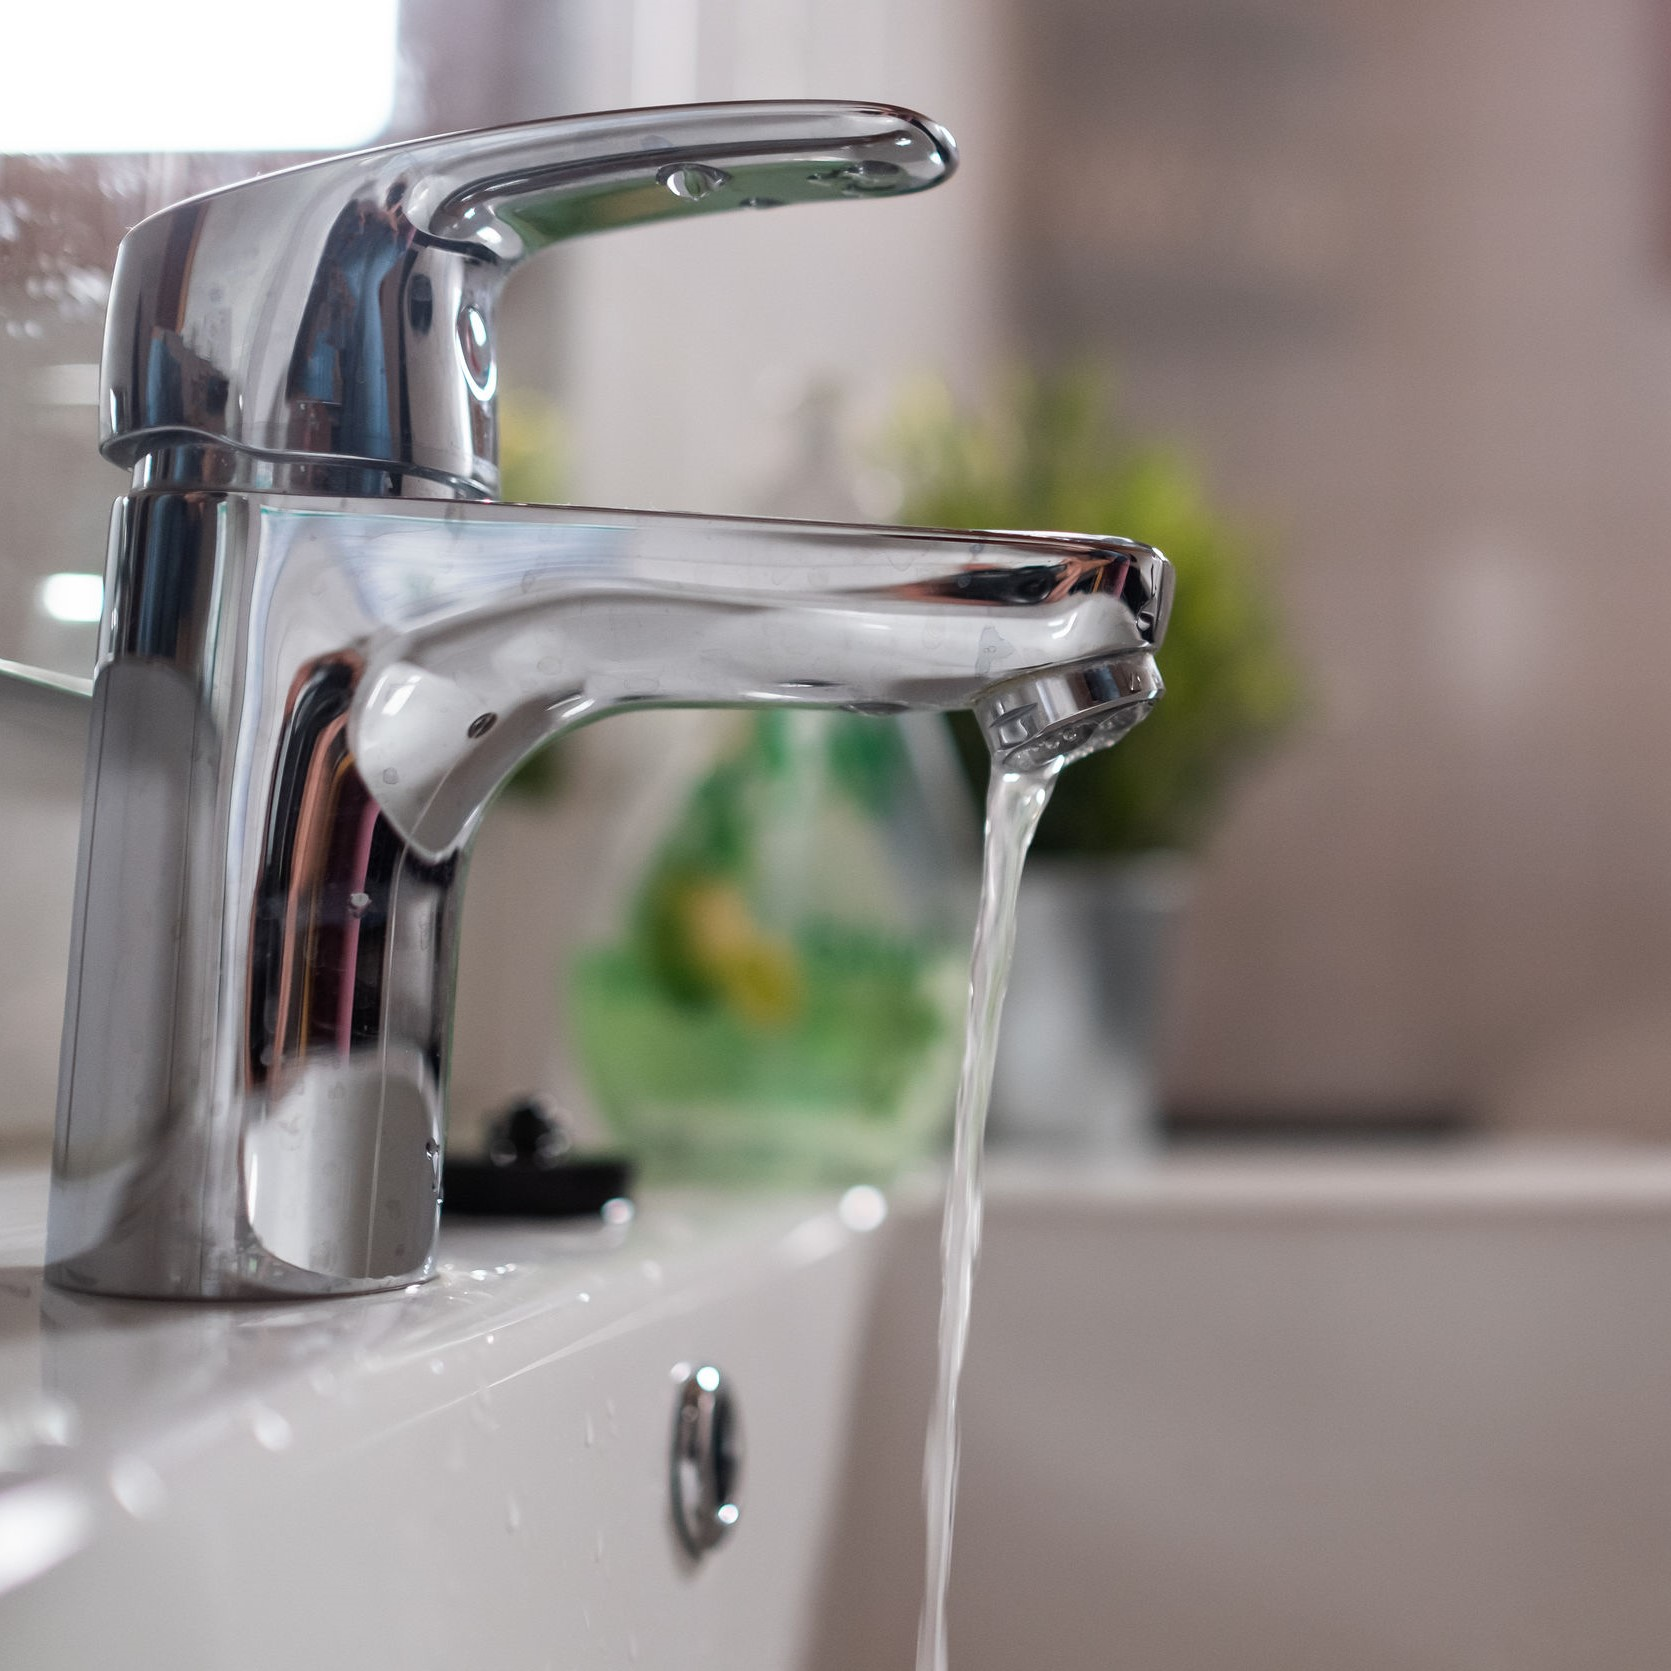 A sink faucet with low water pressure.